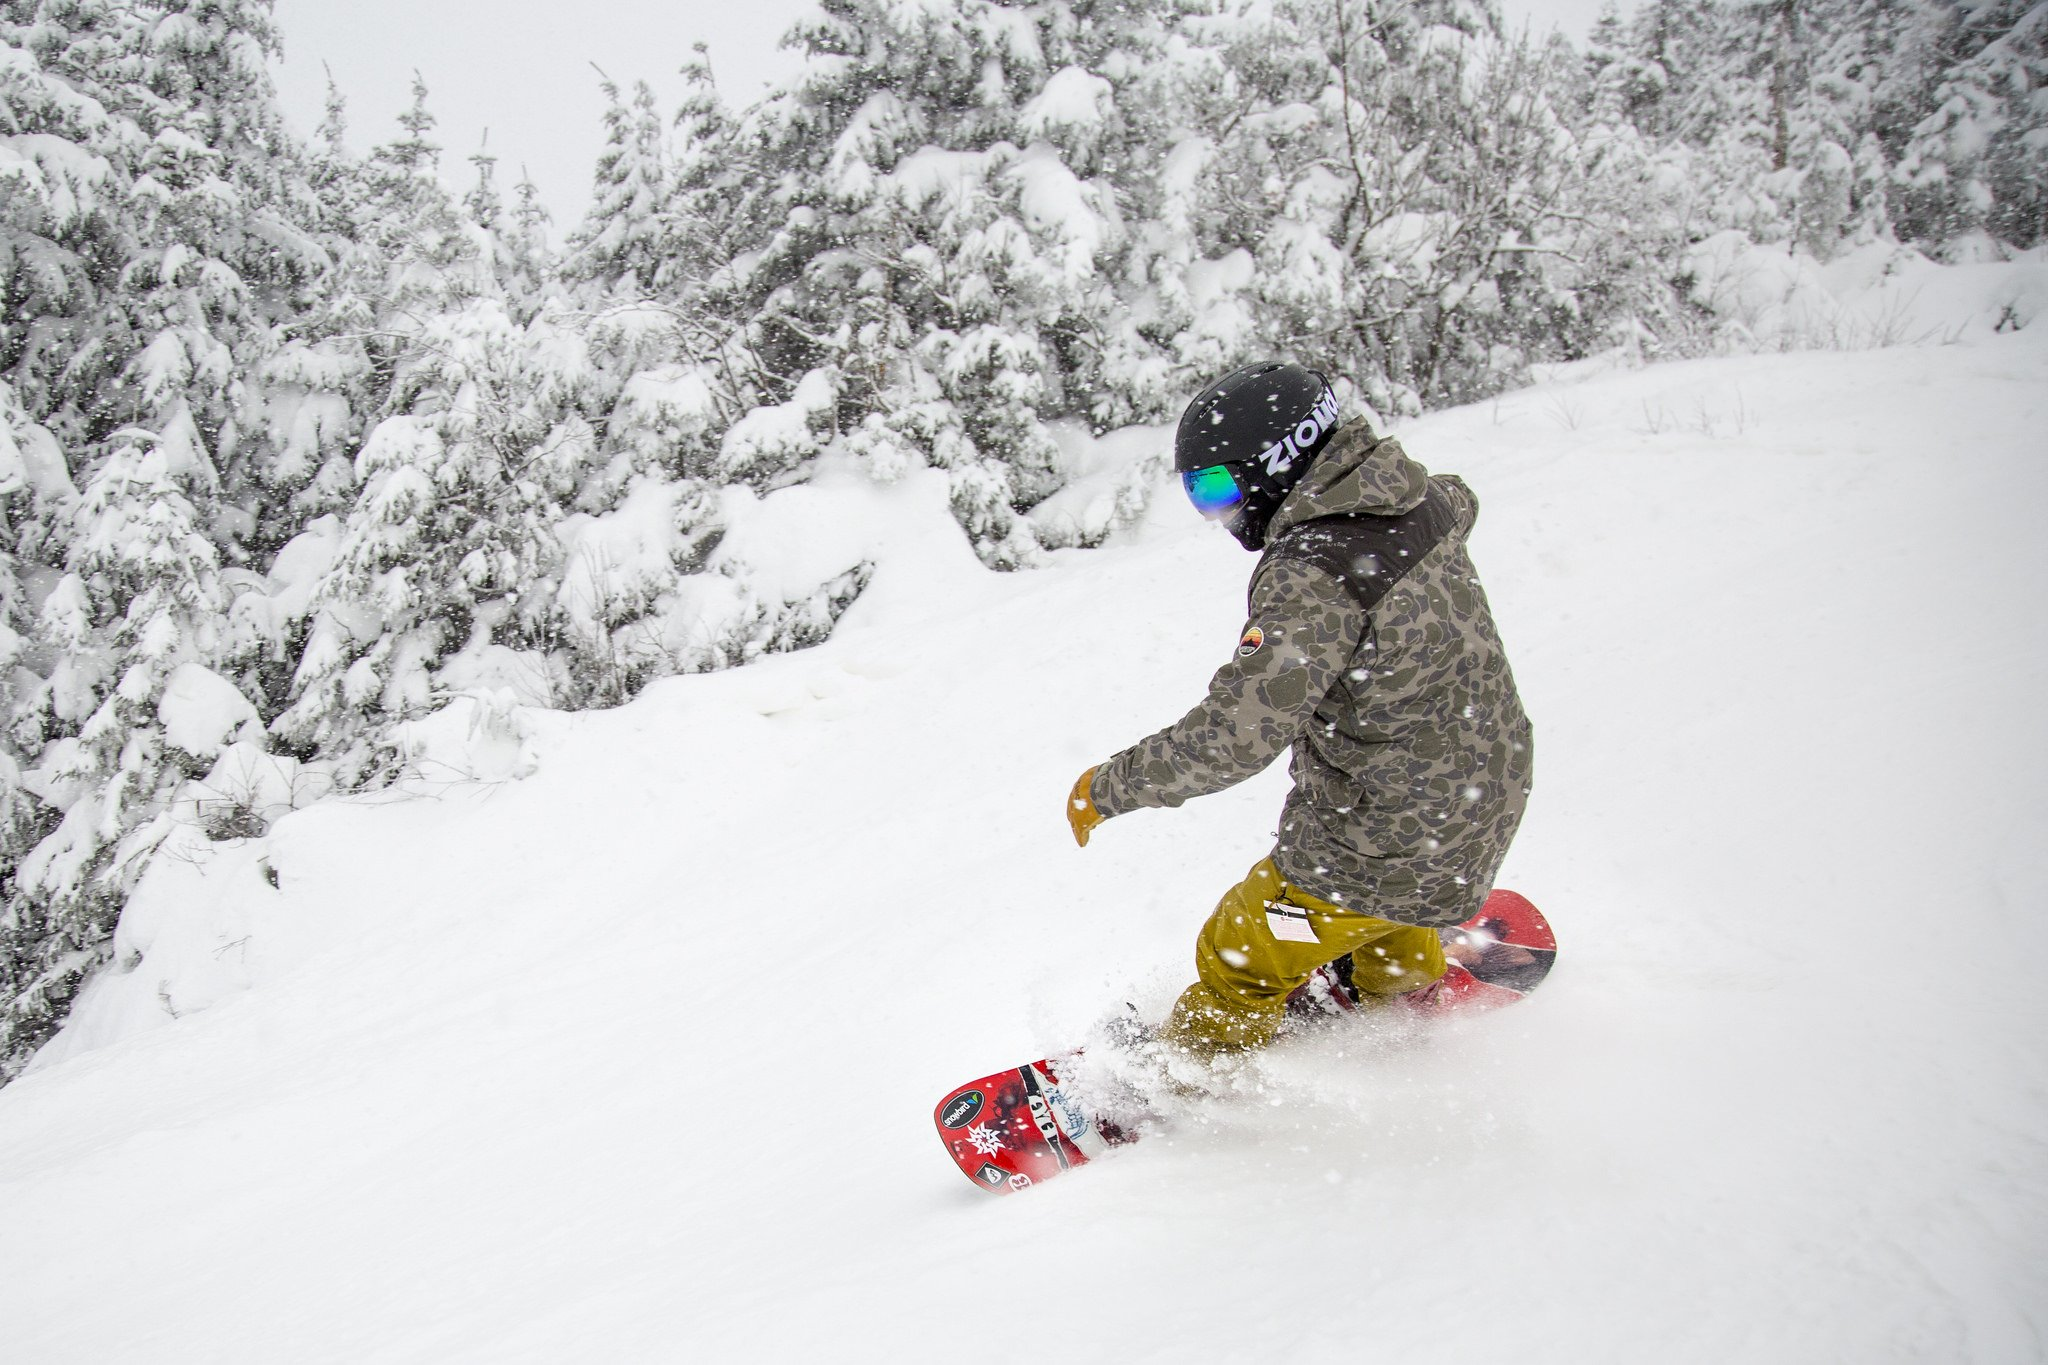 A snowboarder approaching a slope surrounded by snowy trees at Whiteface Mountain